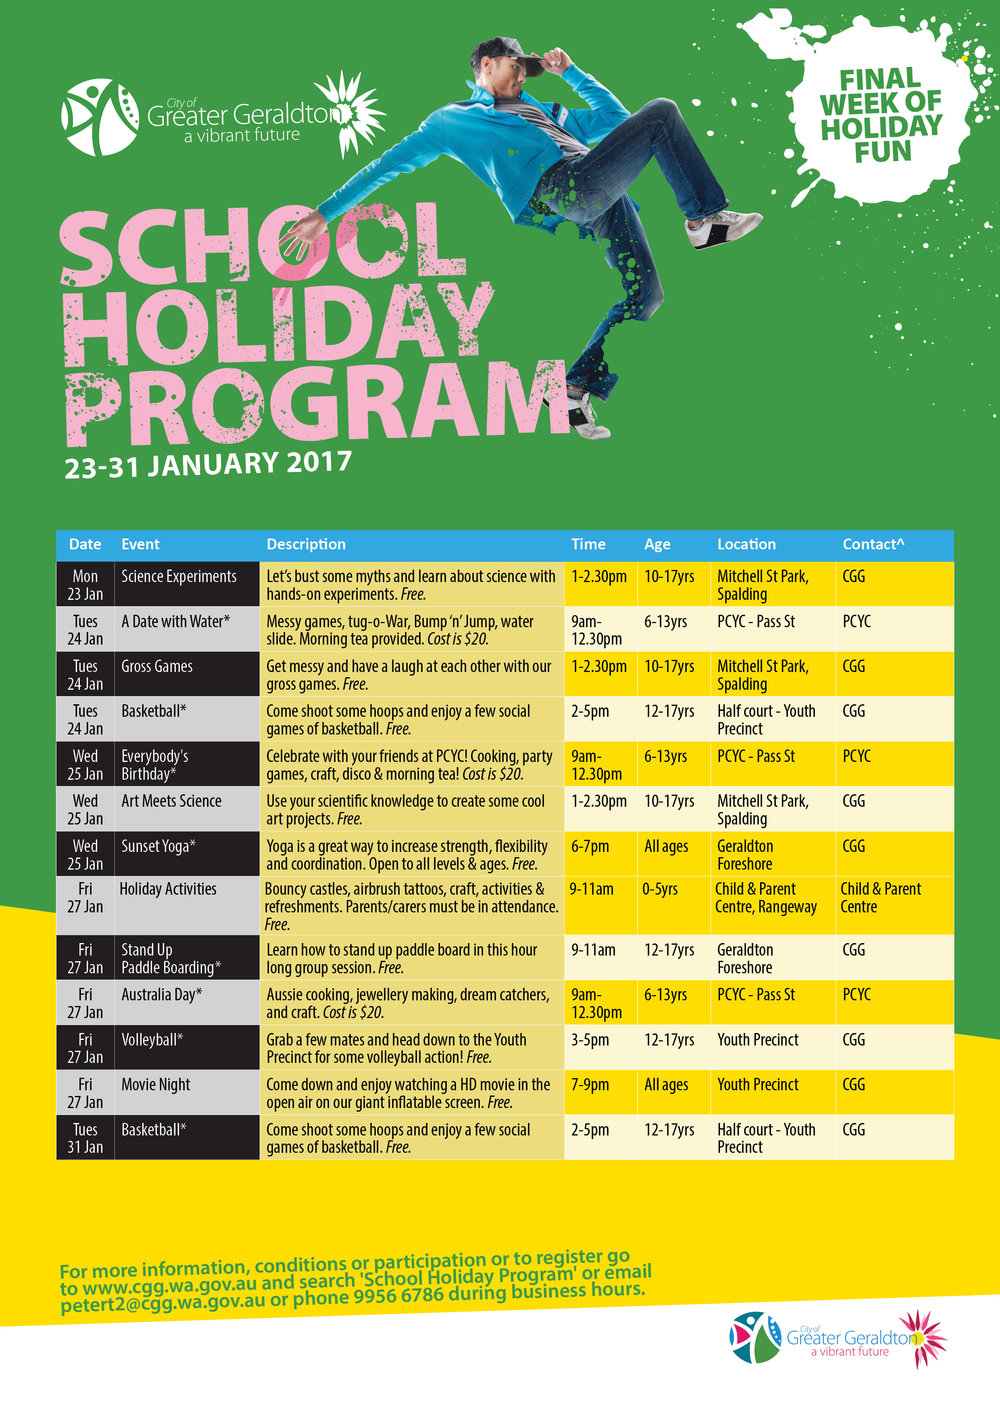 School Holiday Program 2016-17 JPG5.jpg